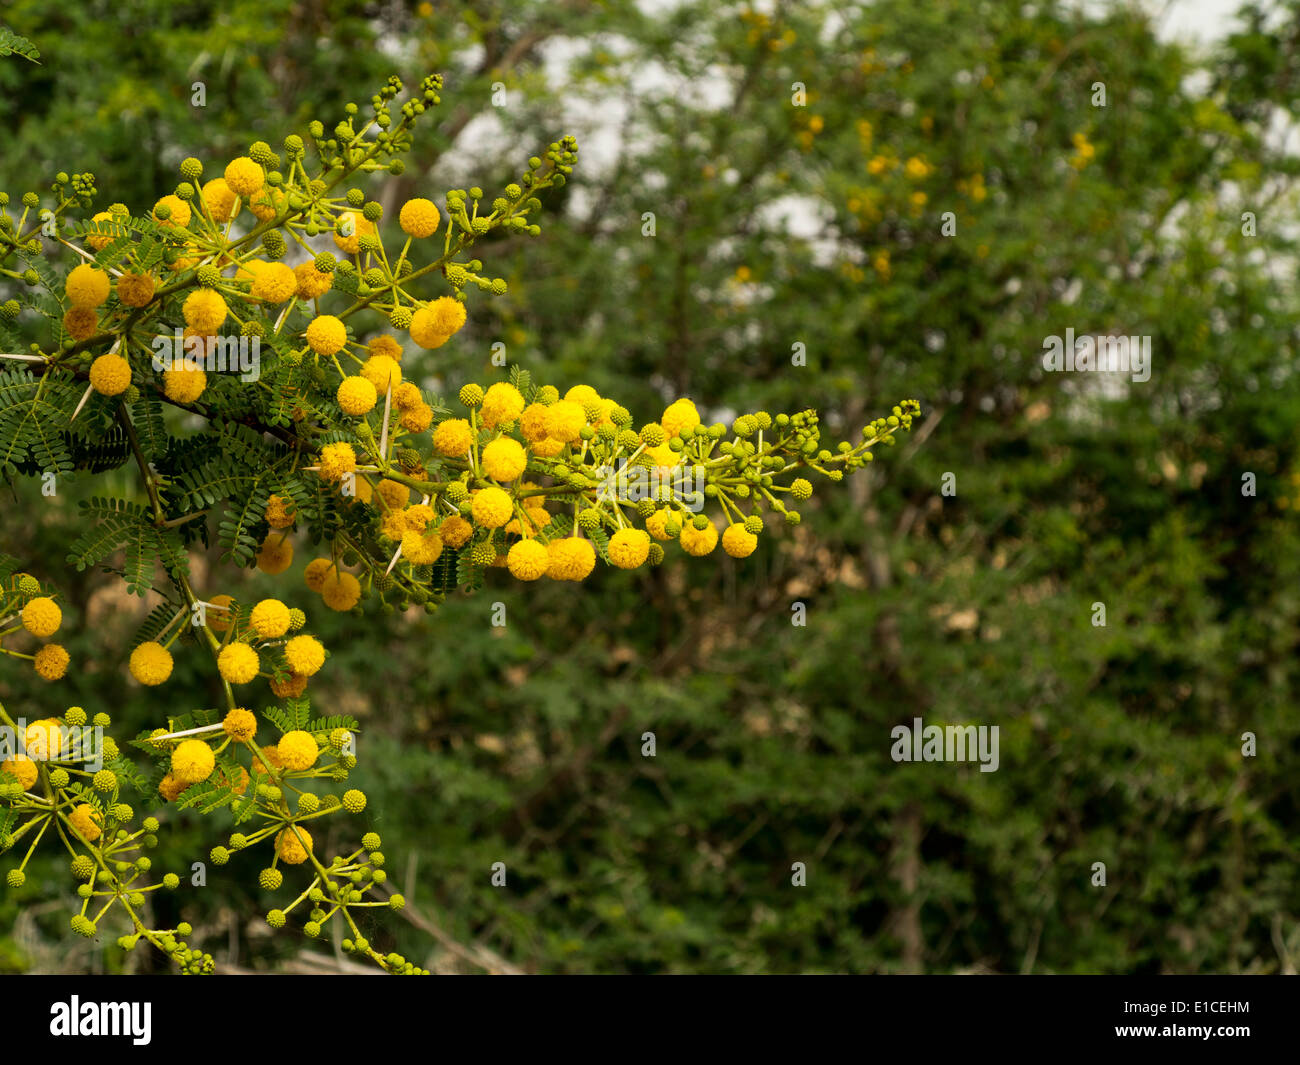 Detail Of A Vachellia Farnesiana Bush With Yellow Flowers Stock